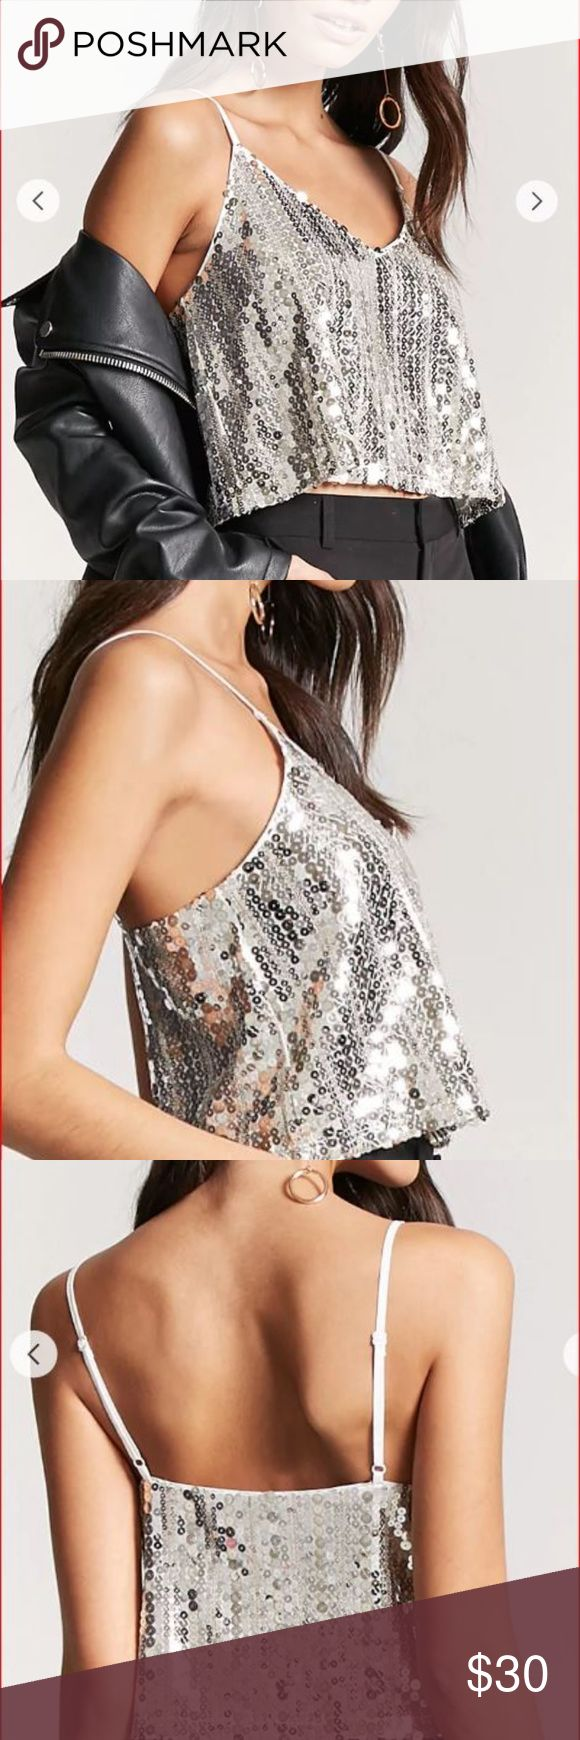 """Luxe Silver Round Sequins Crop Camisole A cropped cami top featuring an allover metallic silver round sequins on white background, adjustable straps, V-neck, and a drapey silhouette.  Wear with jacket, blouse etc or alone.  Gorgeous!  Can be dressed up or down.  Model wearing black dress slacks, looks just as amazing with jeans!   -100% polyester  - Hand wash cold  Bust 38"""" to 39"""" Tops Camisoles"""